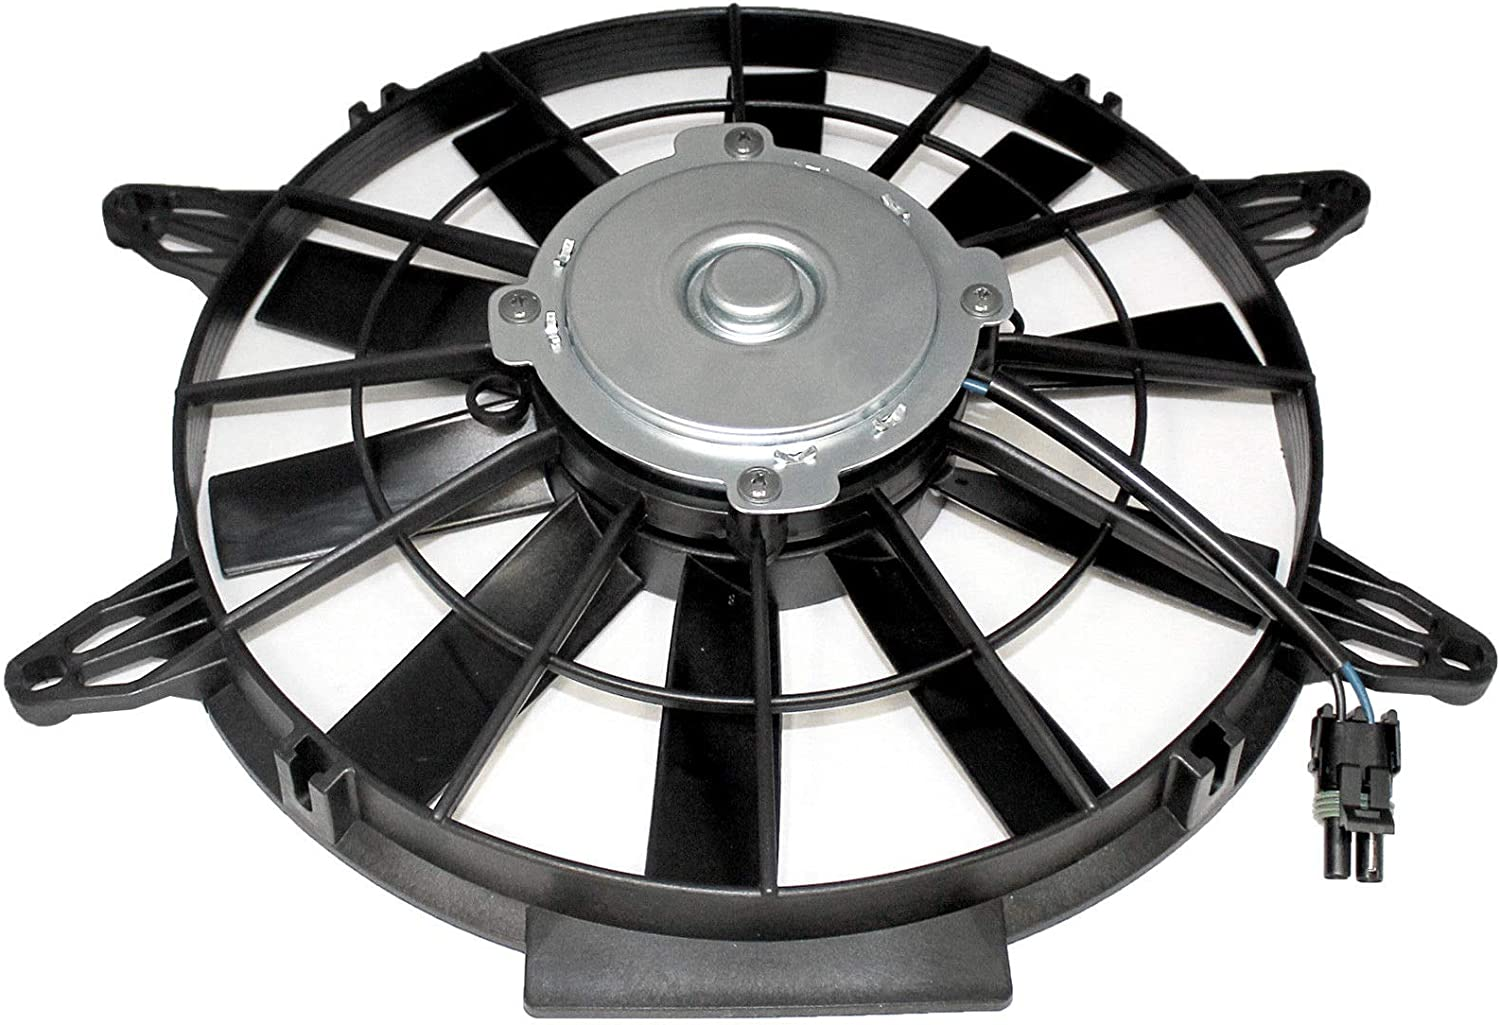 Caltric Radiator Cooling Fan Motor Compatible With Polaris Sportsman 500 HO EFI 2004 2005 2006 2007 2008 2009 2010 2011